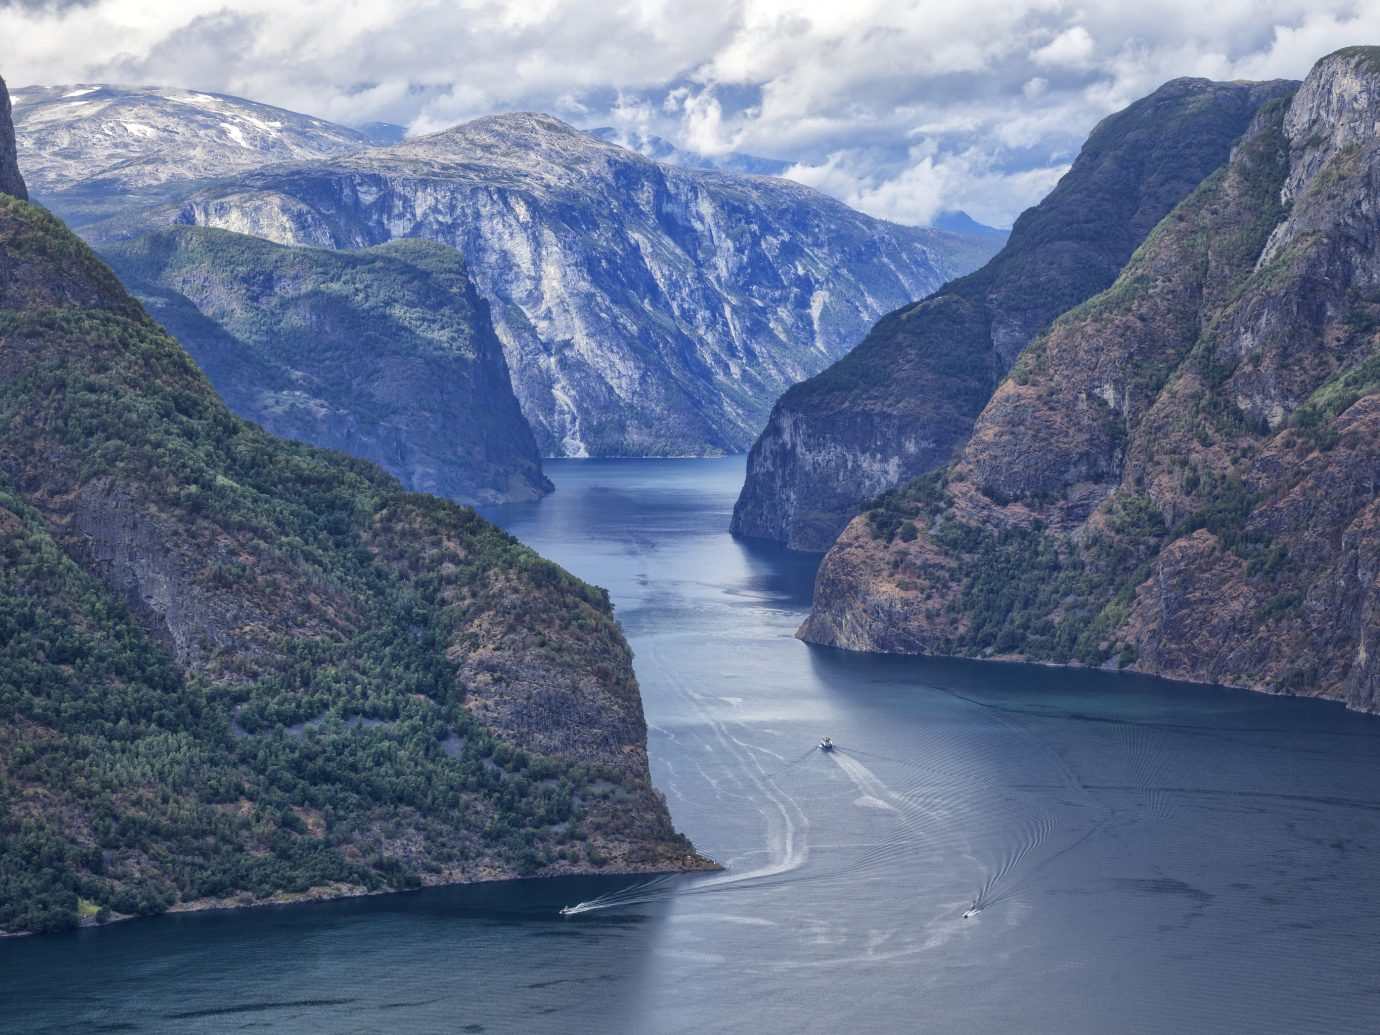 Editors Picks Luxury Travel Trip Ideas mountain Nature outdoor water valley canyon fjord Coast highland glacial landform promontory cliff mount scenery terrain fell sky national park background bay escarpment cape sound River hillside surrounded traveling beautiful Island ravine